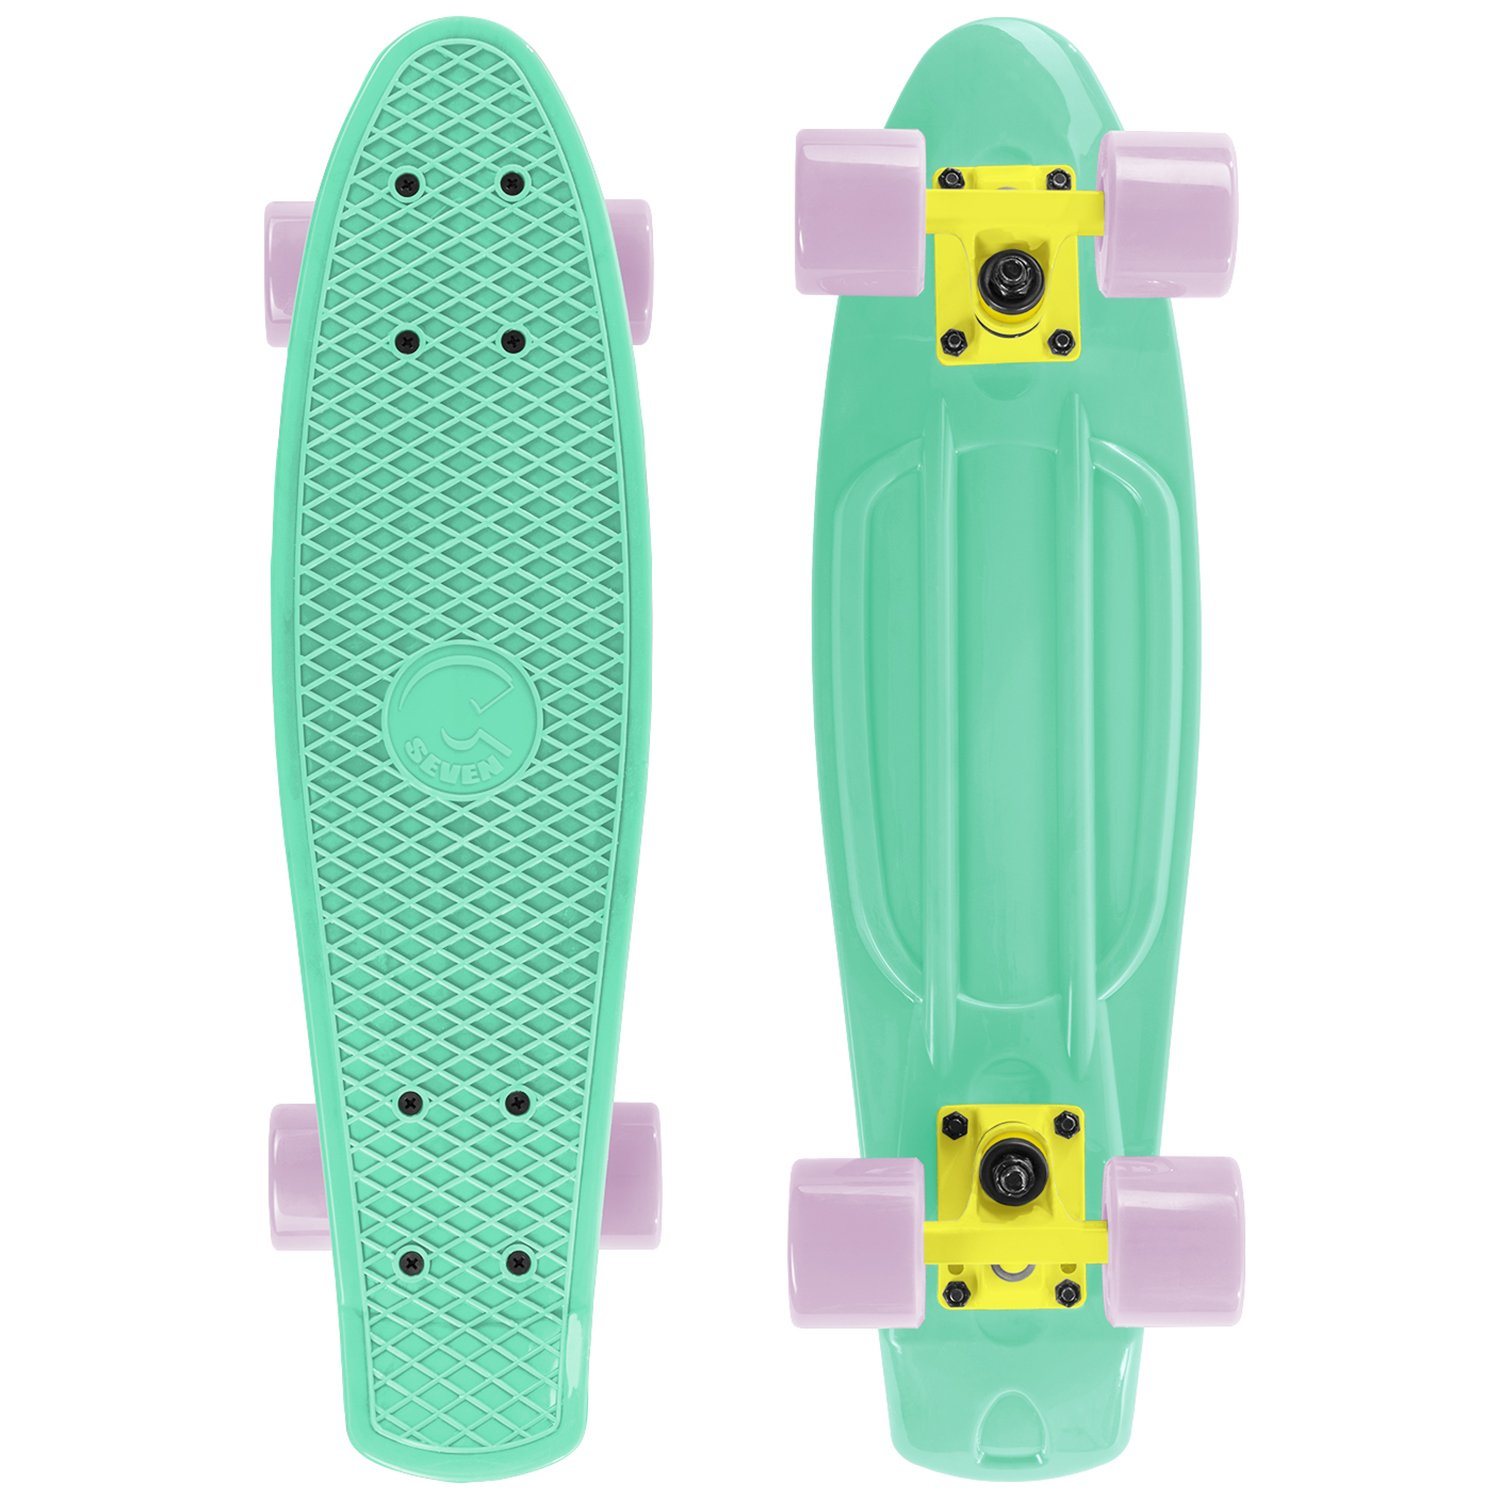 Cal 7 Mini Cruiser Skateboard Complete 22 Inch Standard Style Plastic Board Style (Icy Green/yellow/light Pink)